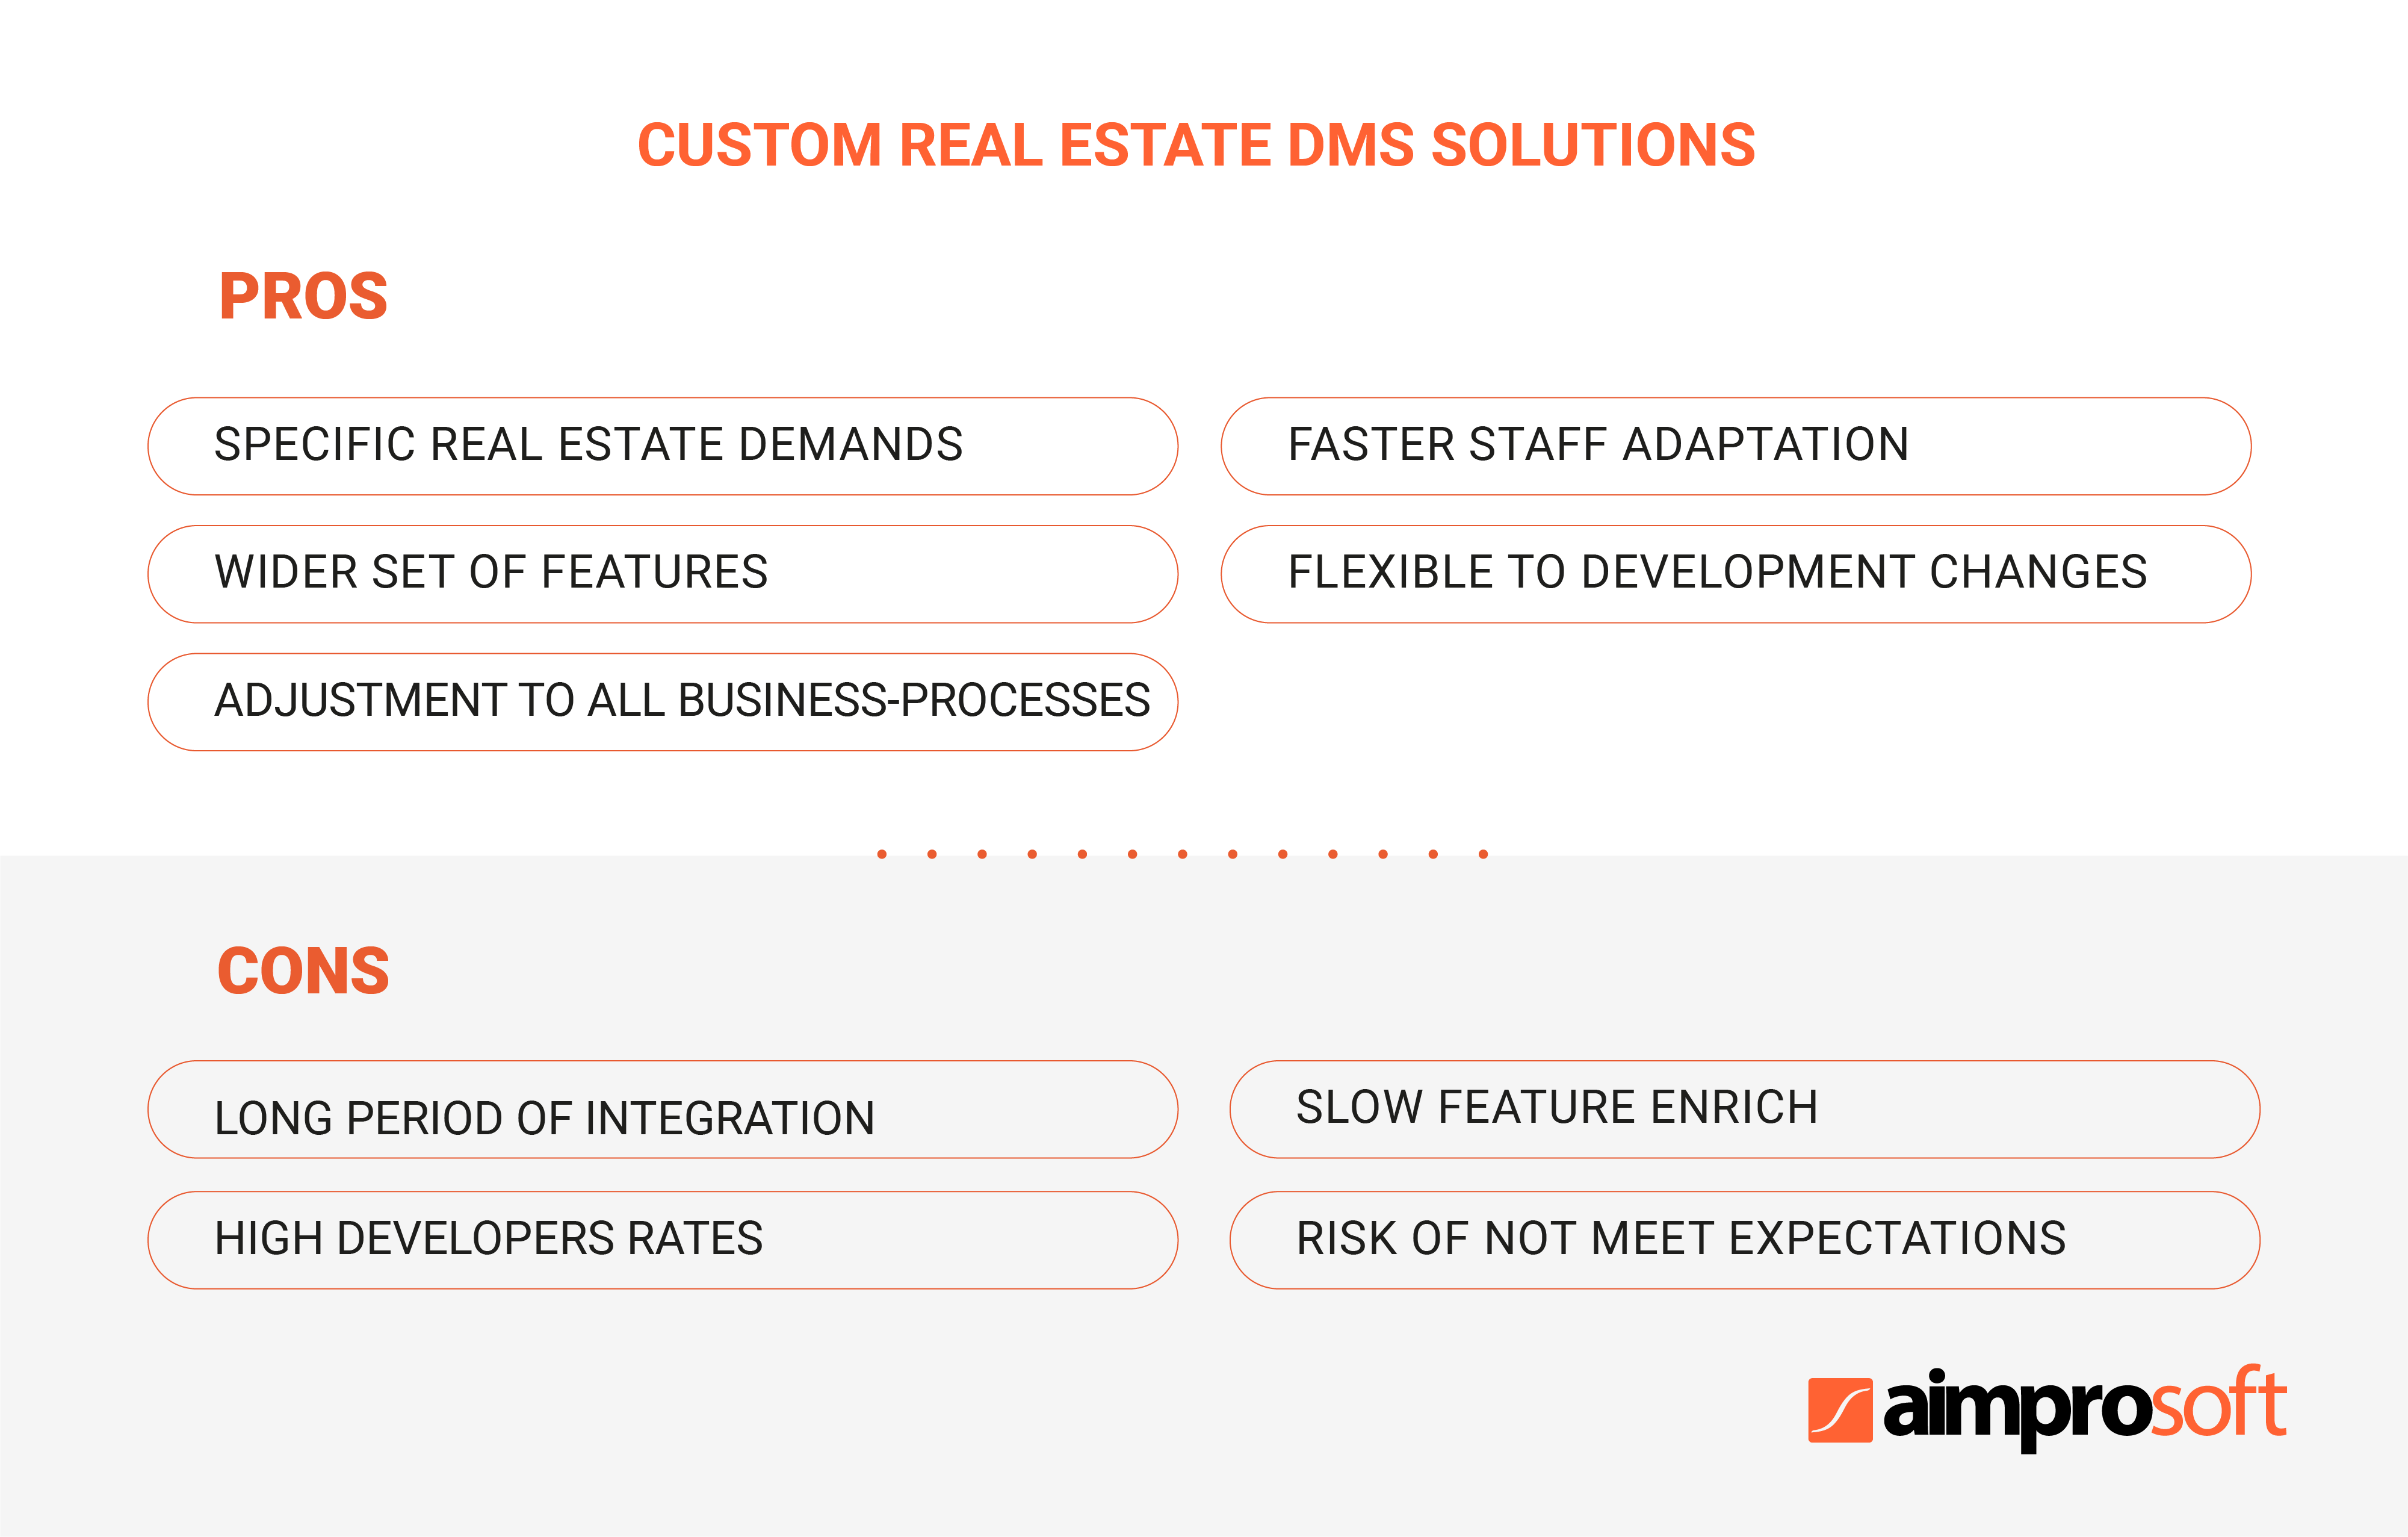 Real estate custom solution: pros and cons of document management software